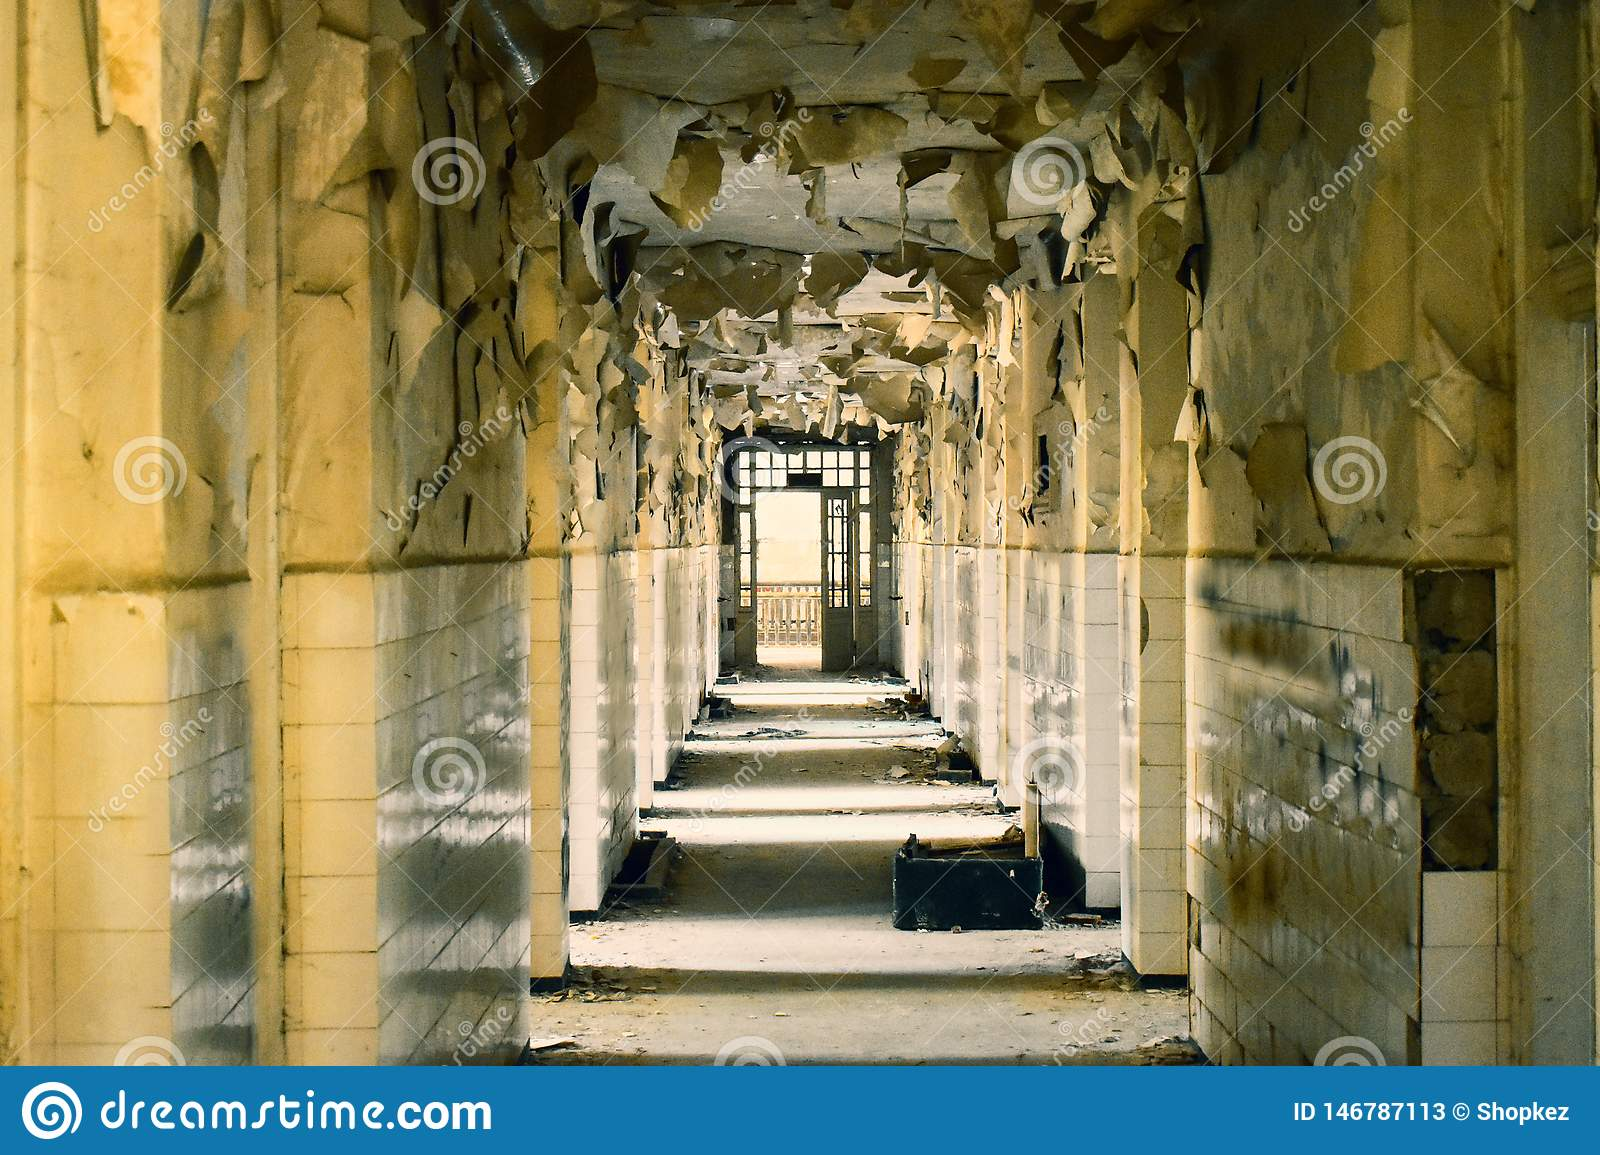 Big abandoned corridor with big broken windows and exfoliate walls in the asylum